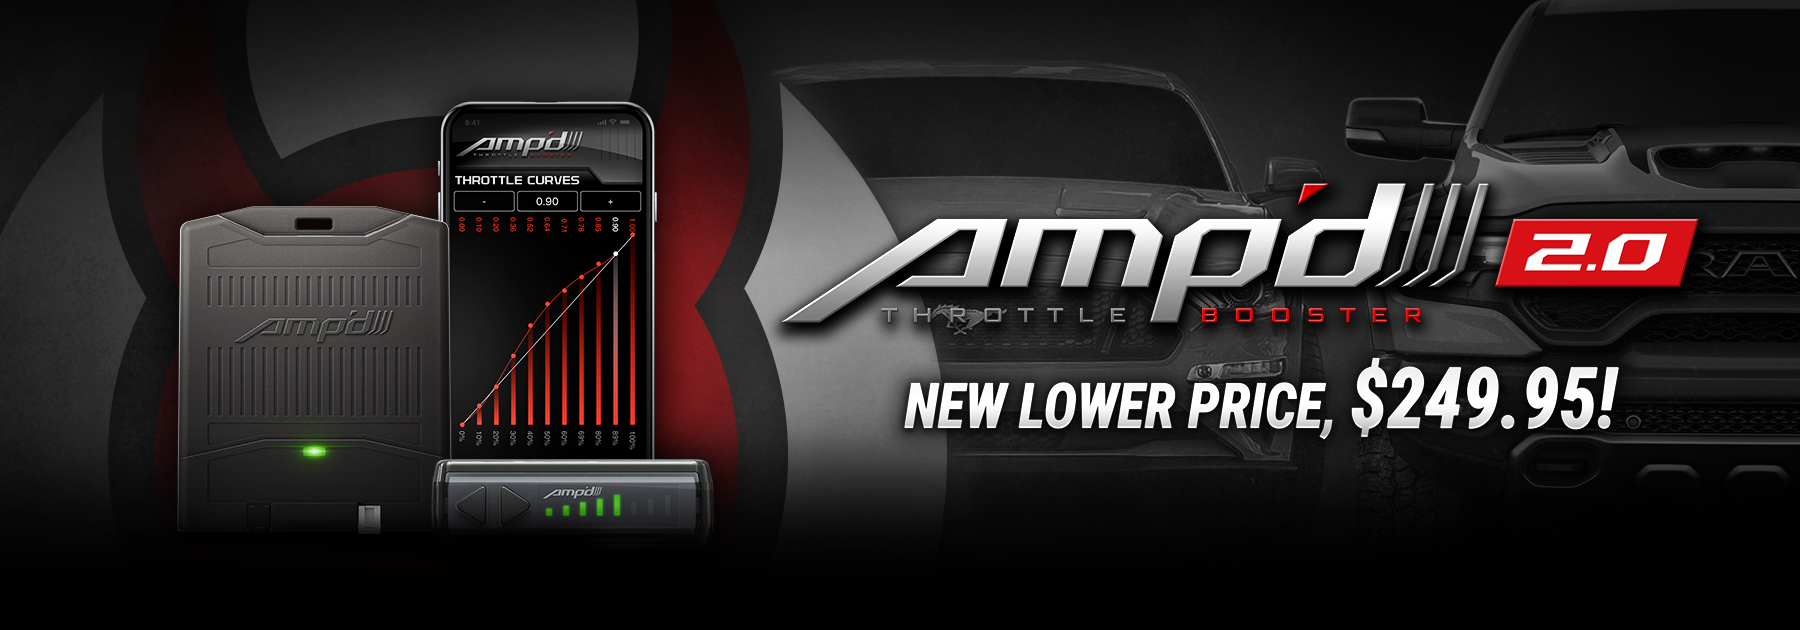 AMP'd 2.0 throttle booster price drop $249.95. Bluetooth remote, customizable throttle curves.